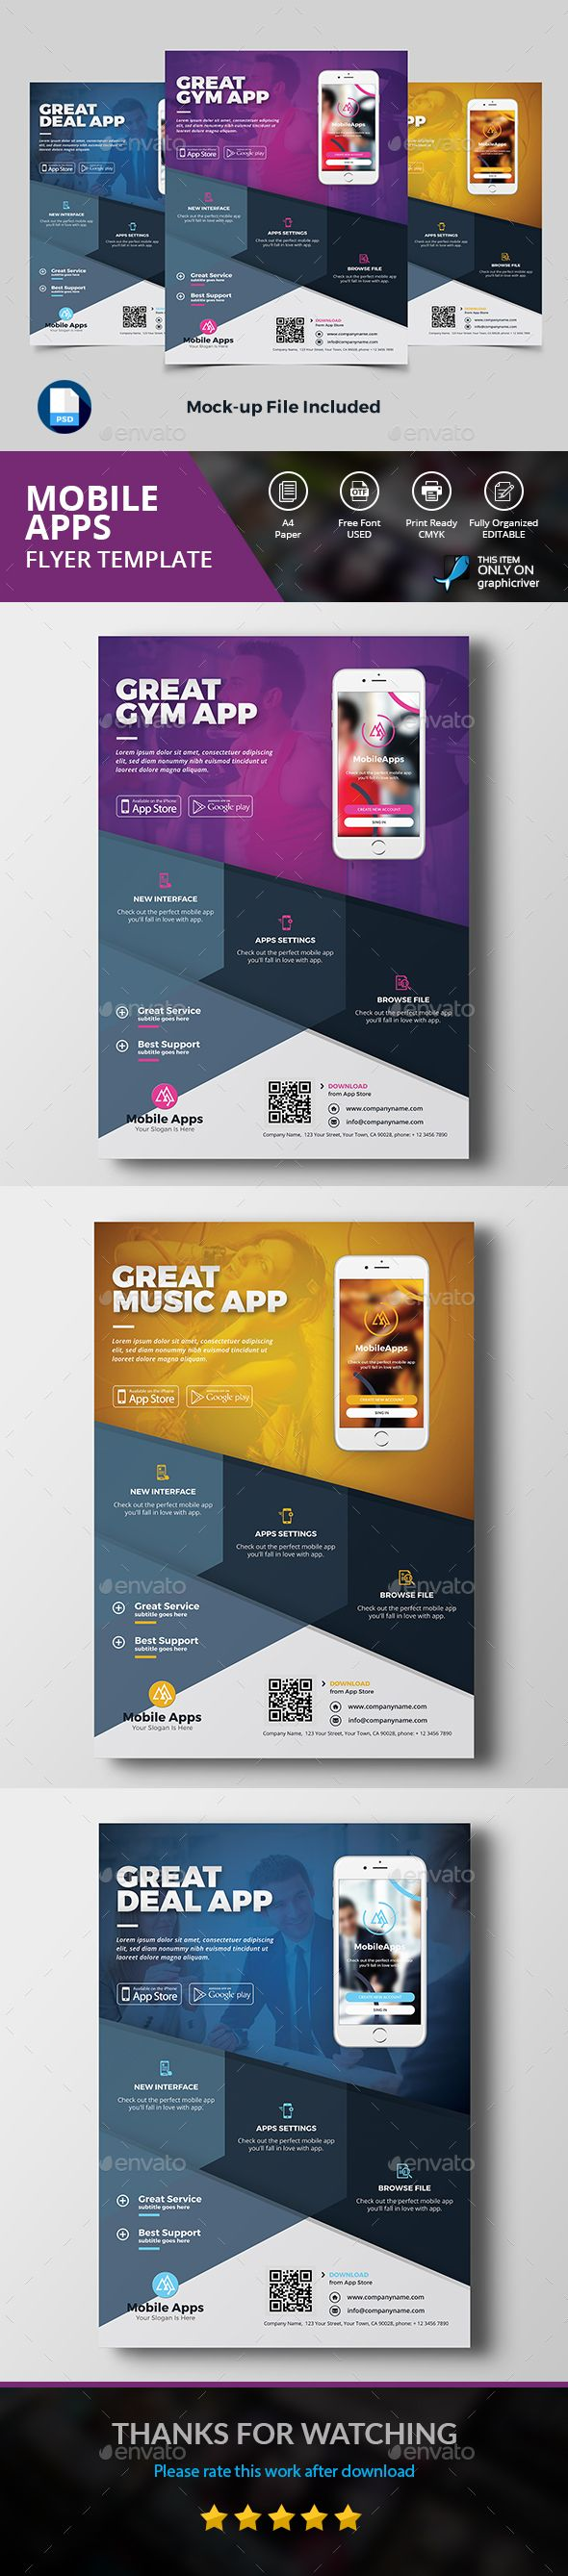 Mobile App Flyer - Commerce Flyers Download here: https://graphicriver.net/item/mobile-app-flyer/18979347/?classicdesignp